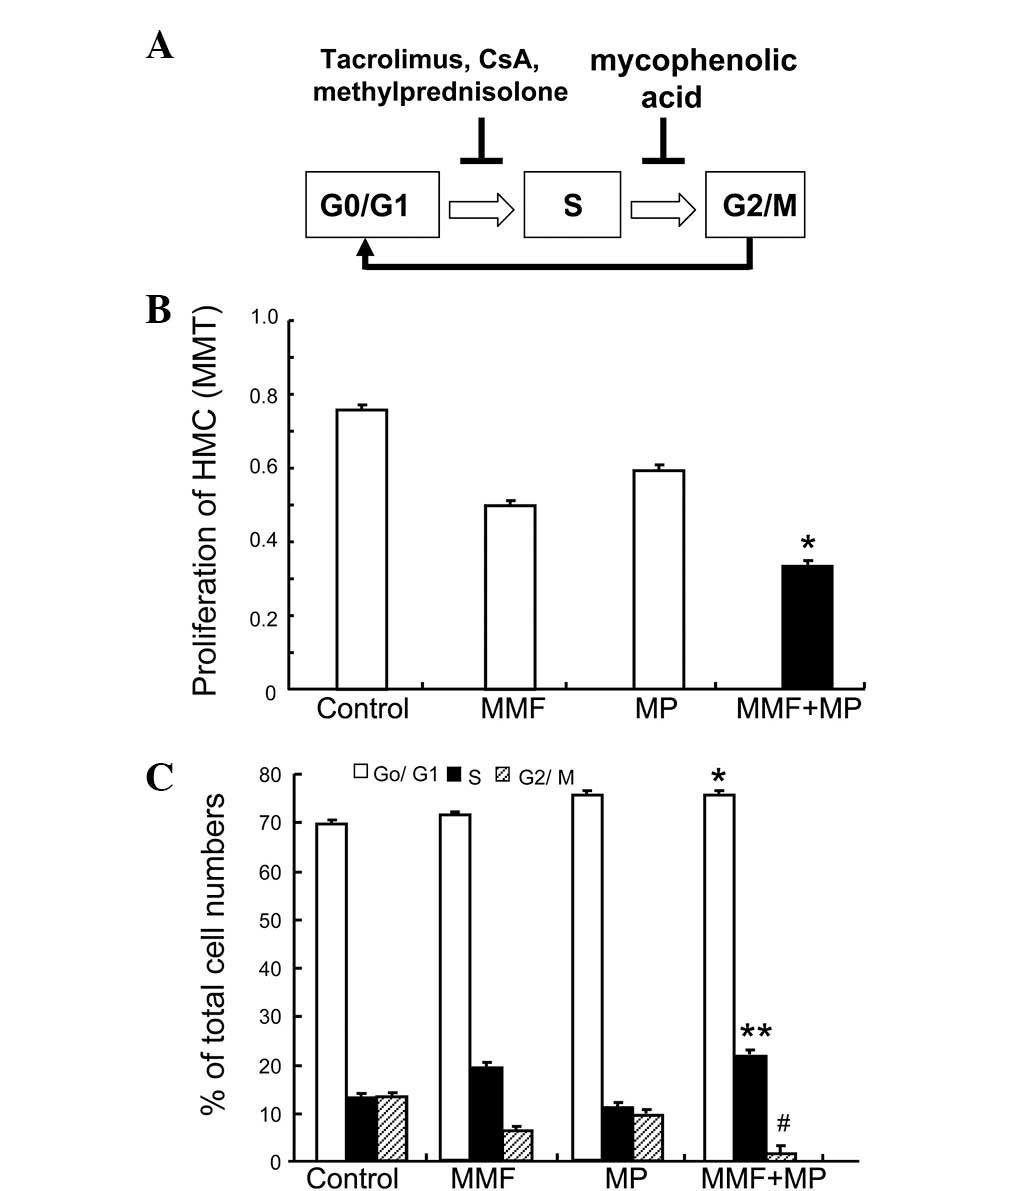 Effect Of Immunosuppression On The Human Mesangial Cell Cycle 4 Block Diagram Six Sigma A Schematic Displaying Actions Immunosuppressive Agents Hmcs Calcineurin Inhibitors Tac And Csa Mp Inhibit Hmc